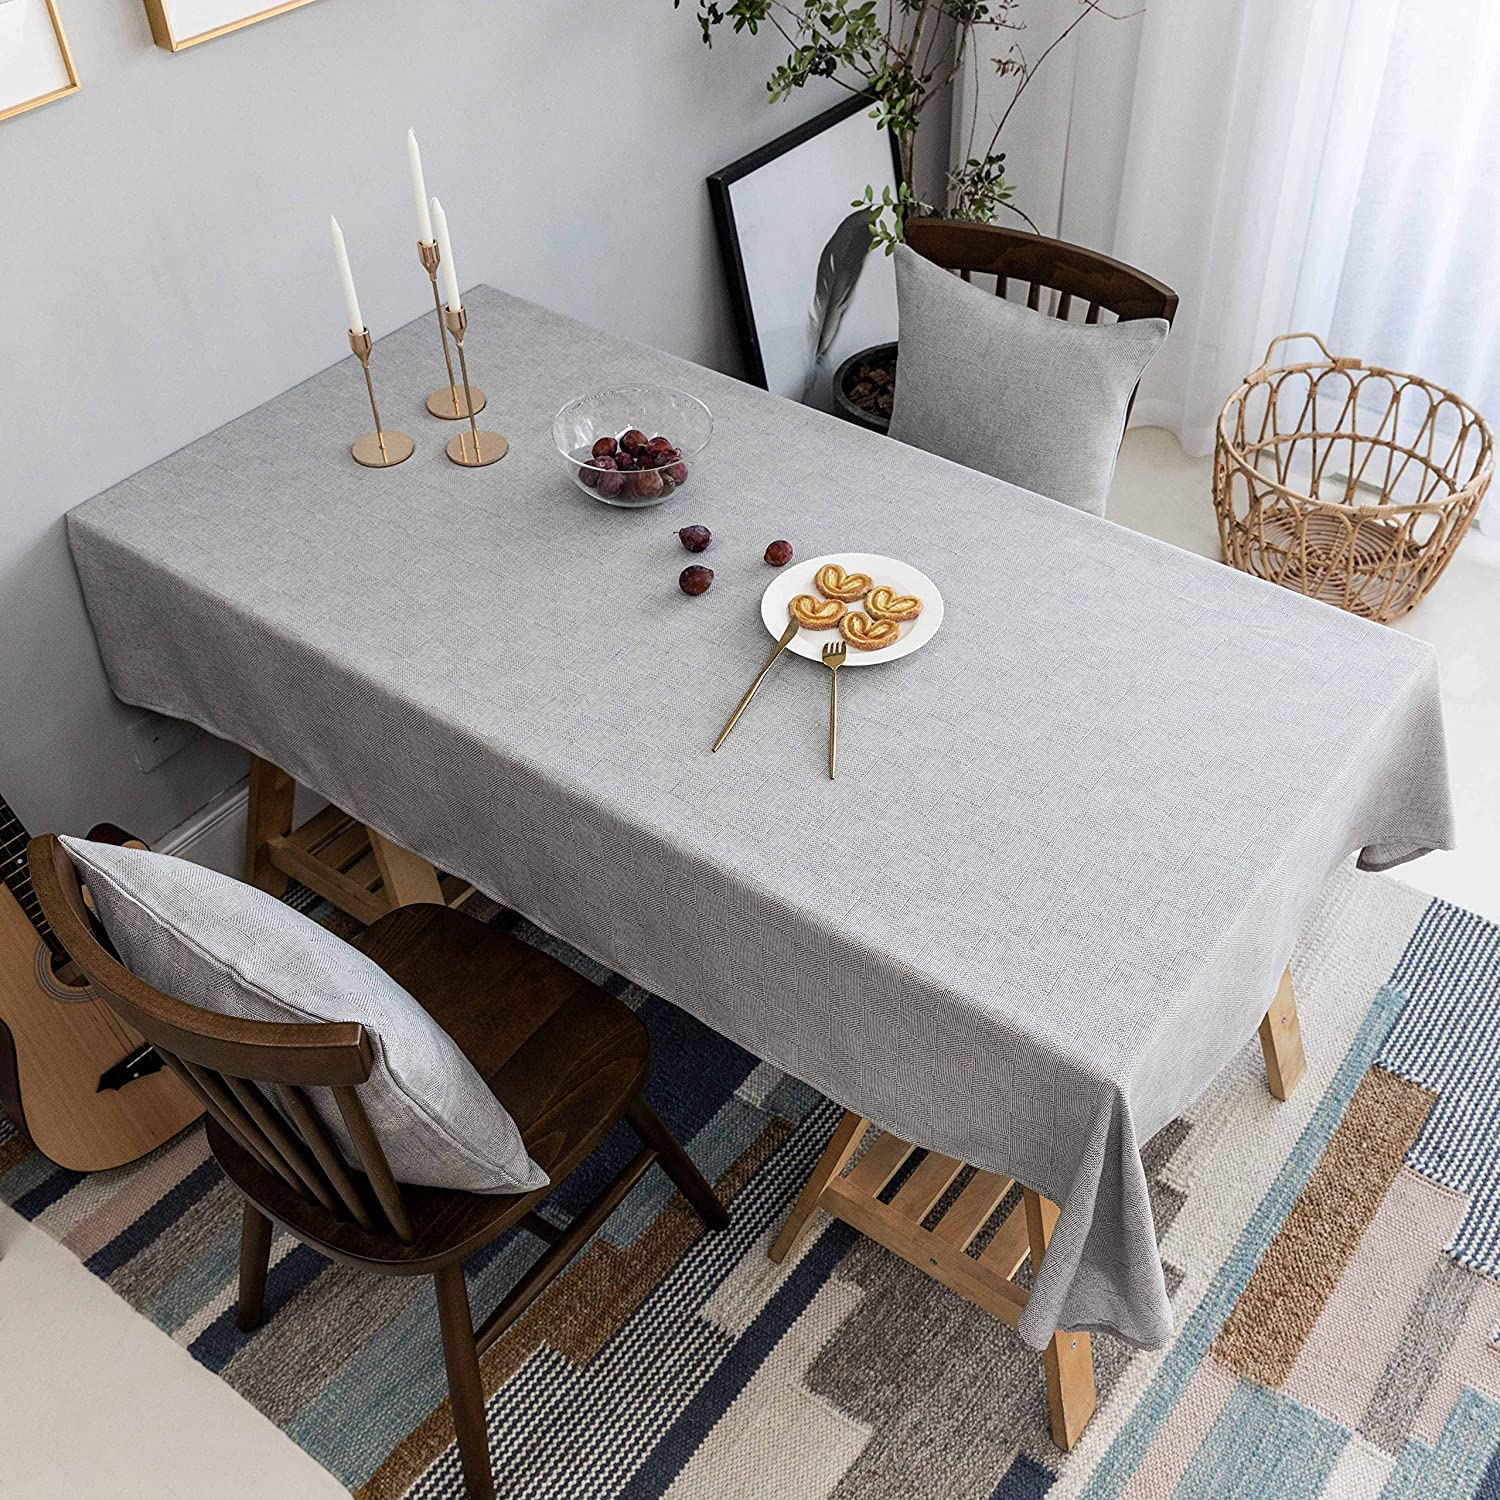 Home Brilliant Tablecloth Solid Farmhouse Checker Grey Table Covers for Party Kitchen Indoor Outdoor Table Clothes for Dining Table, 52x102 inch, Light Grey